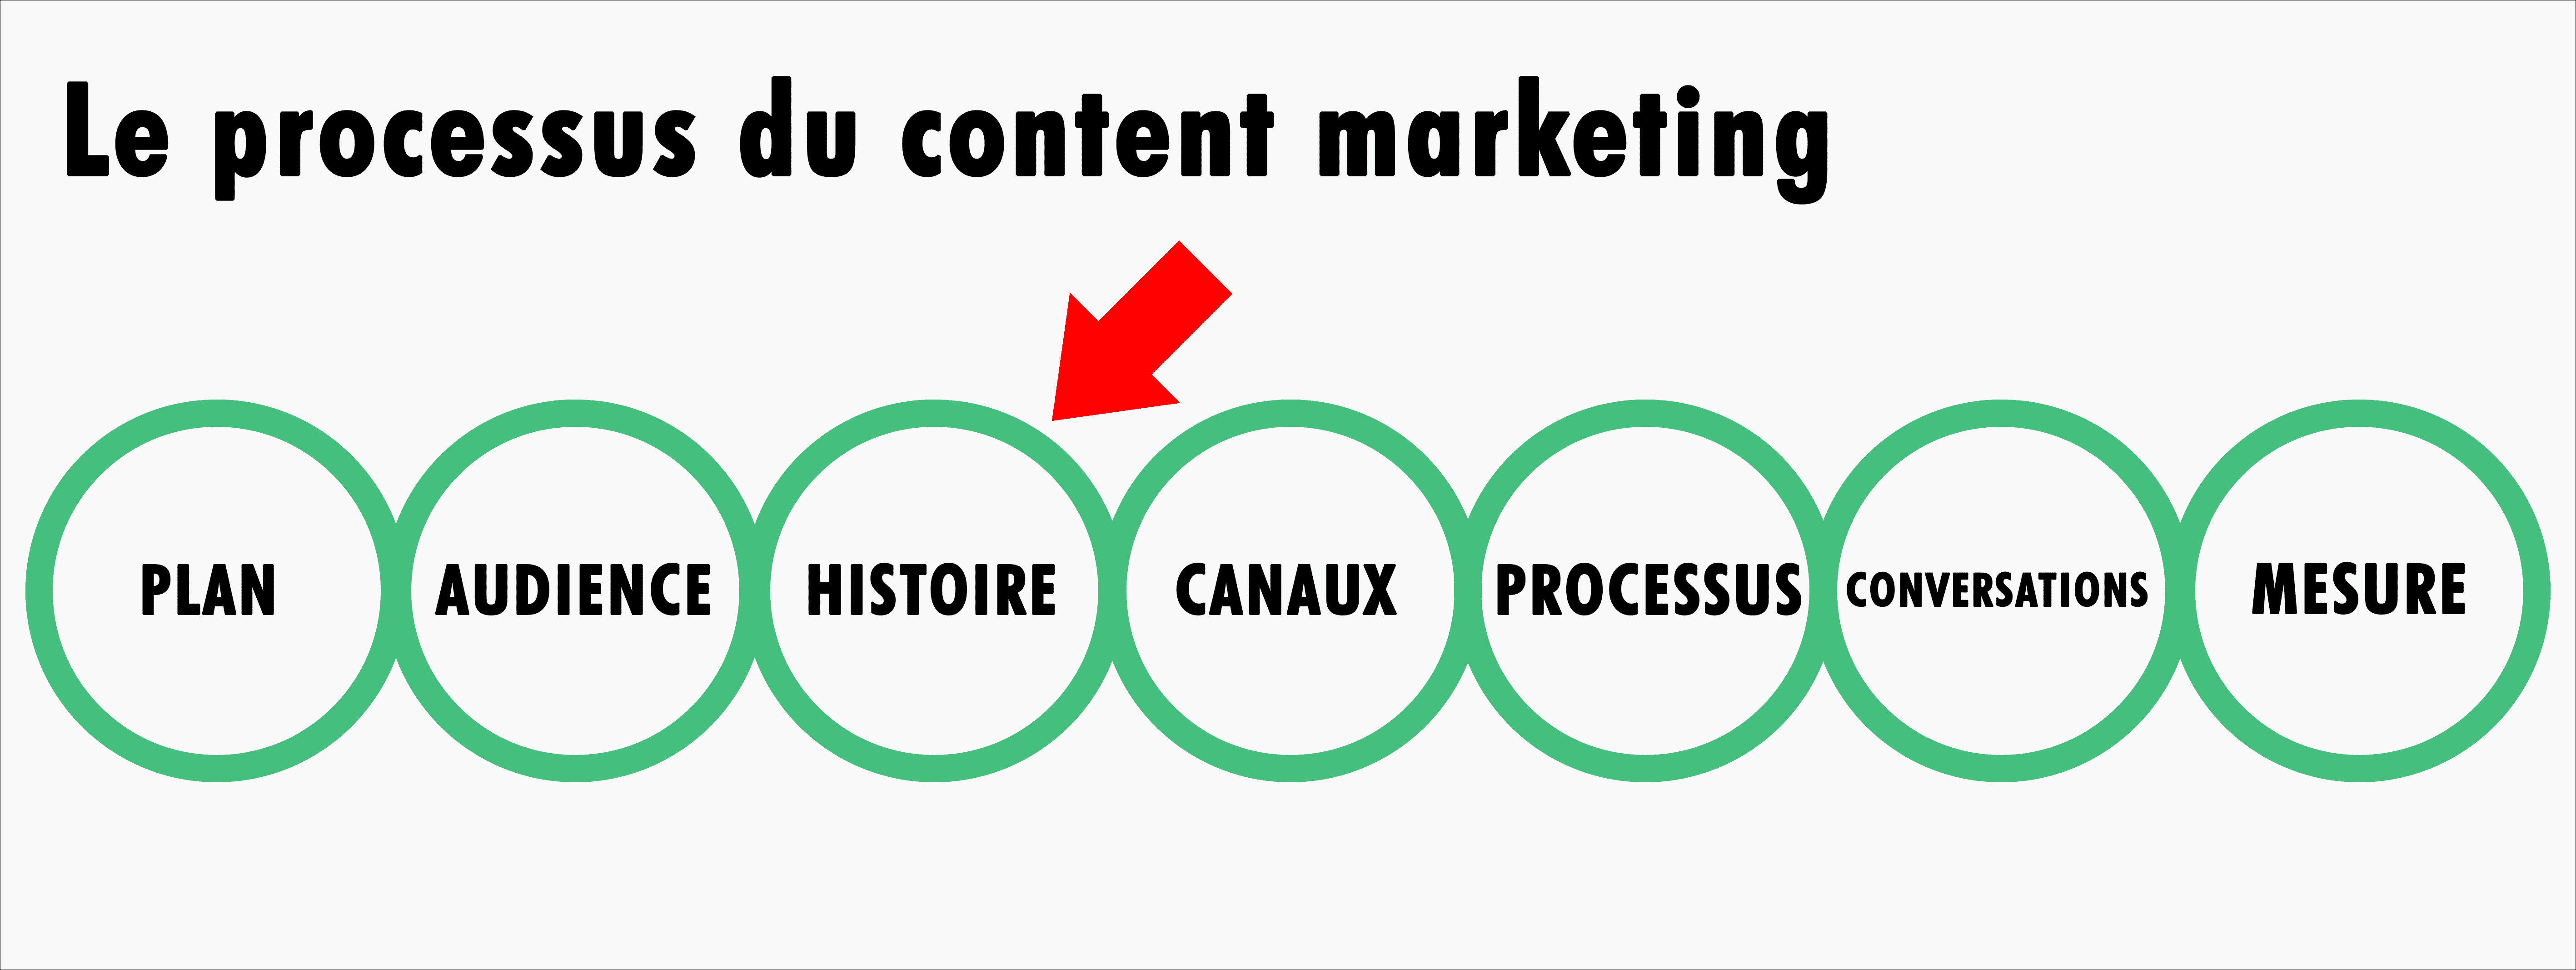 Content-Marketing-Processus1